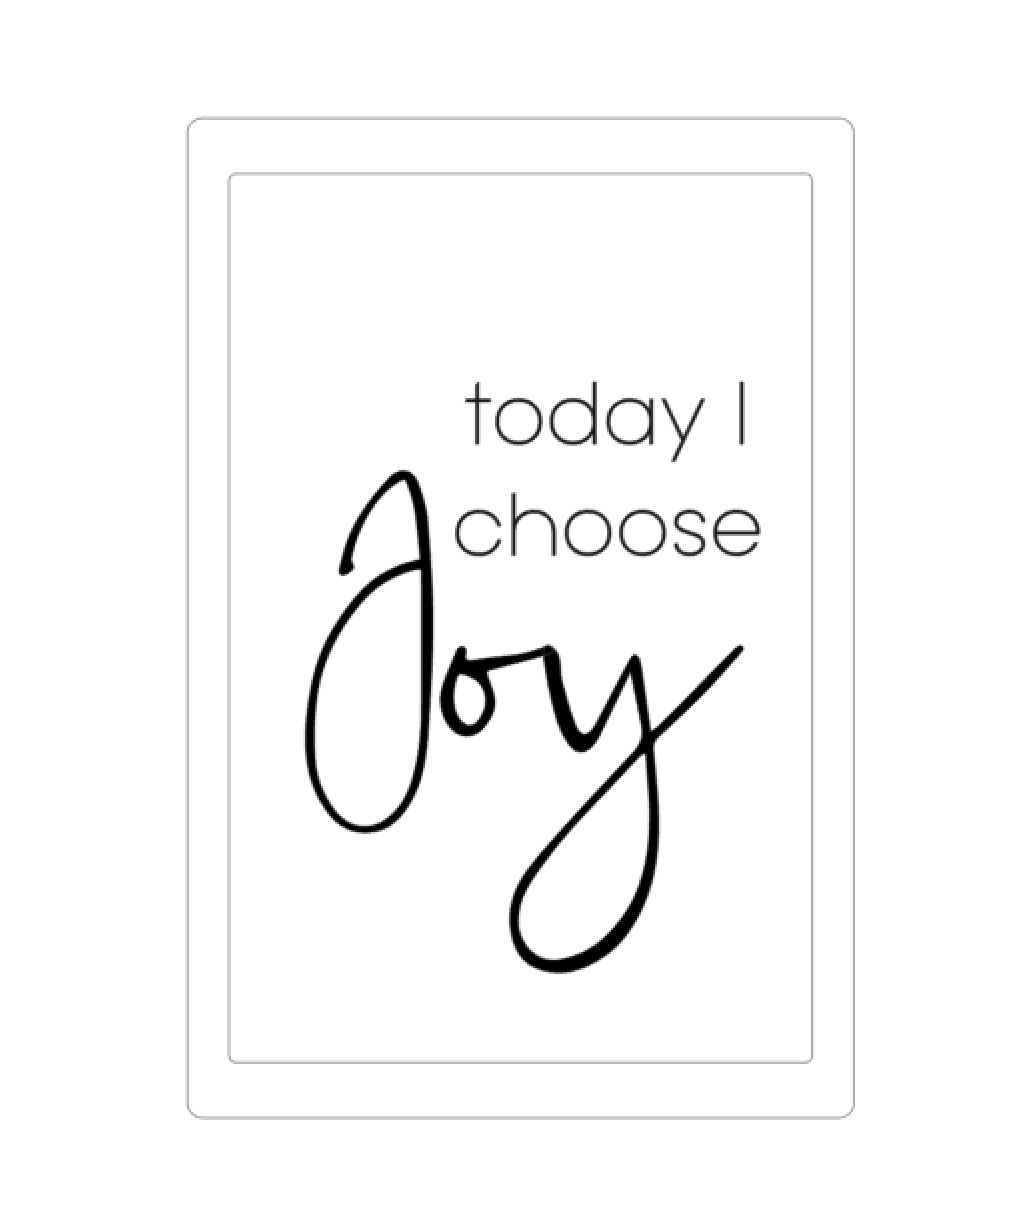 Today I choose joy - New